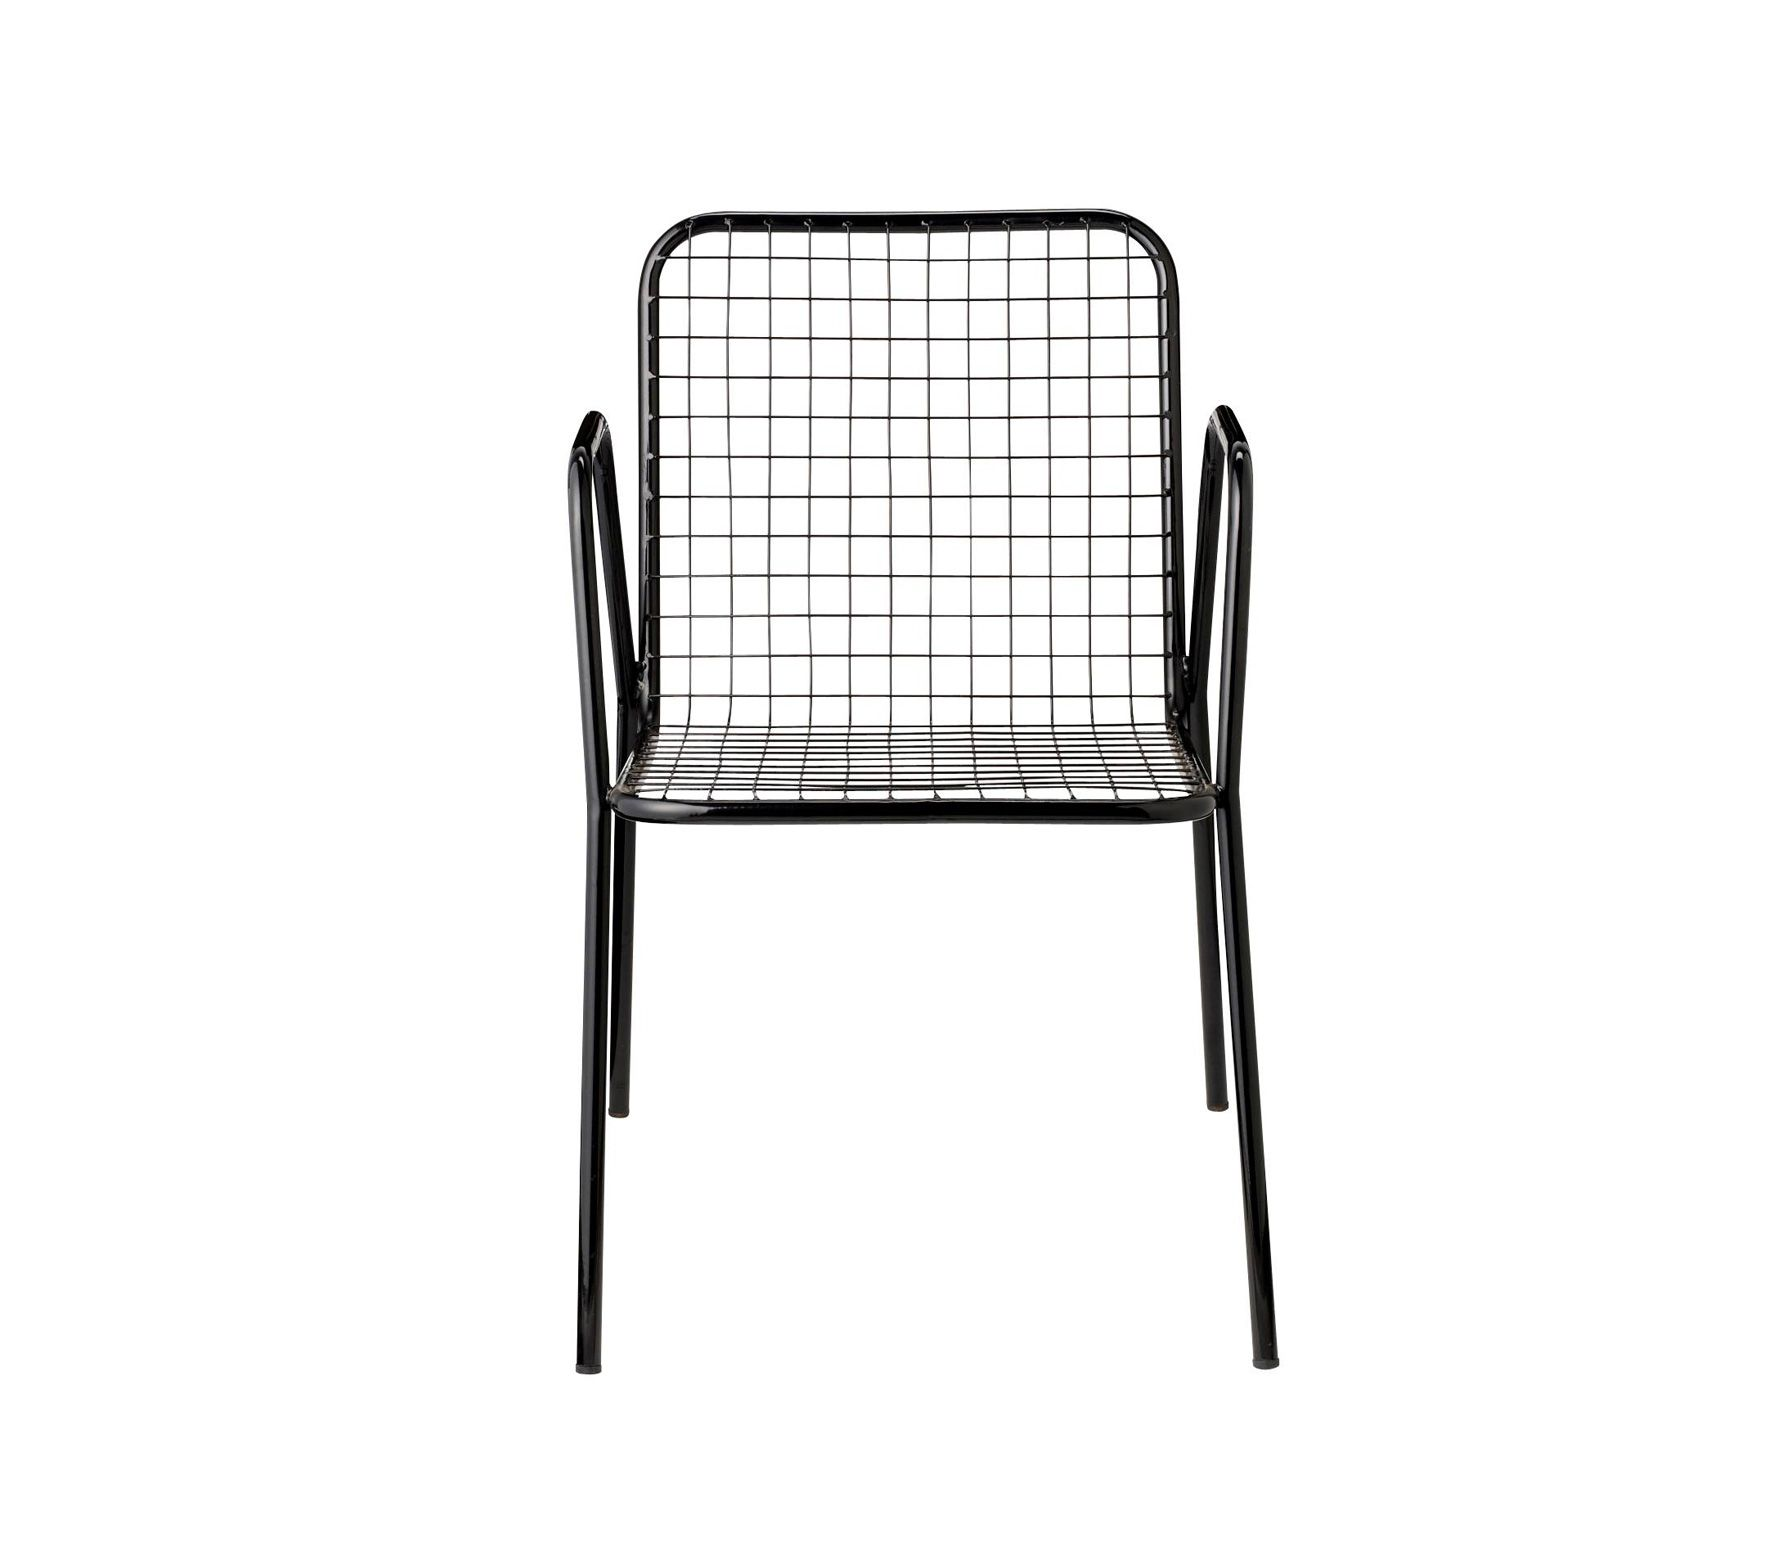 Aluminum chair in black or white | Basiclabel Bloomingville